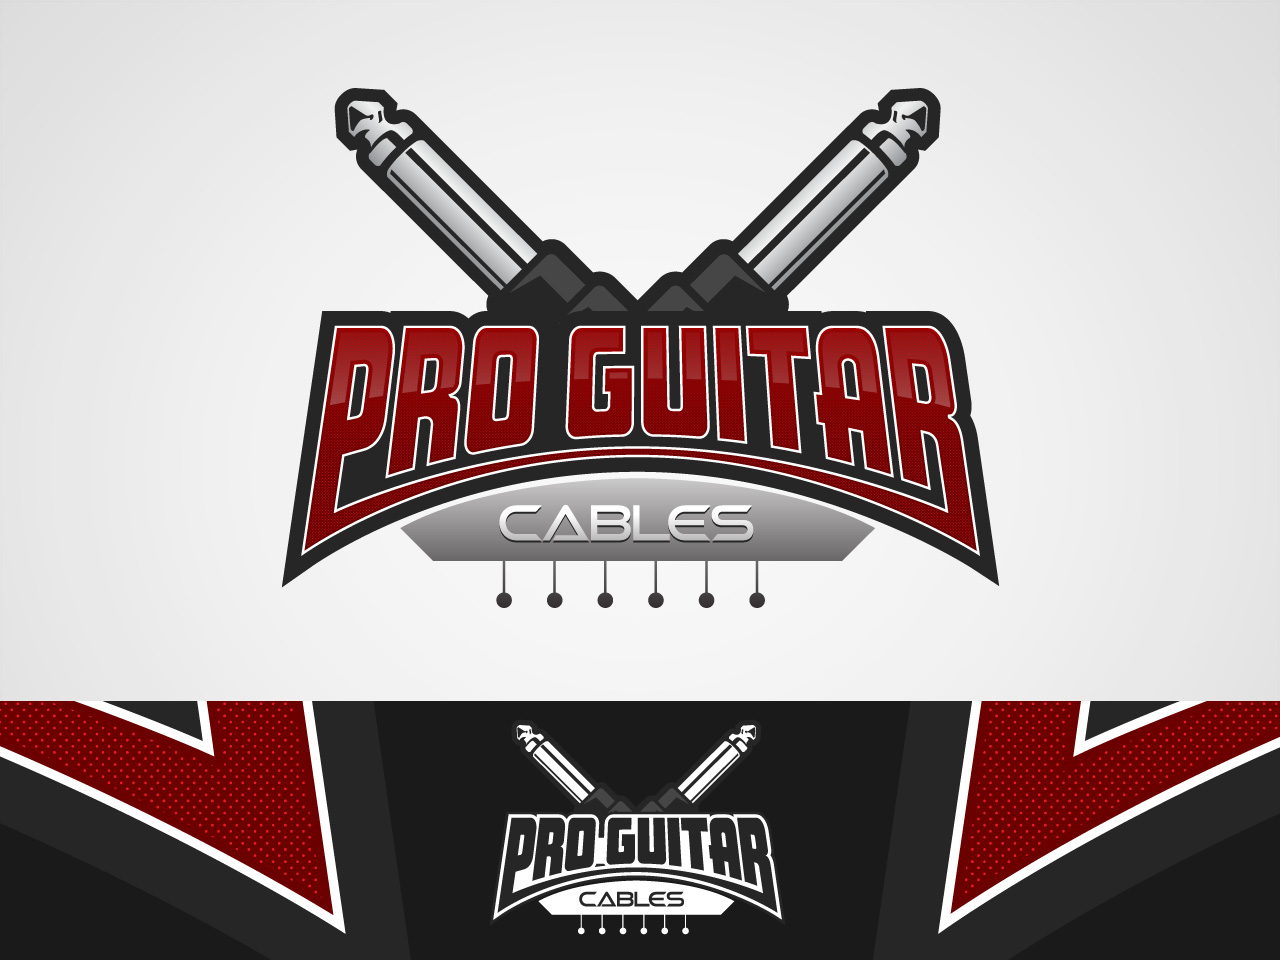 Logo Design by jpbituin - Entry No. 79 in the Logo Design Contest Pro Guitar Cables Logo Design.